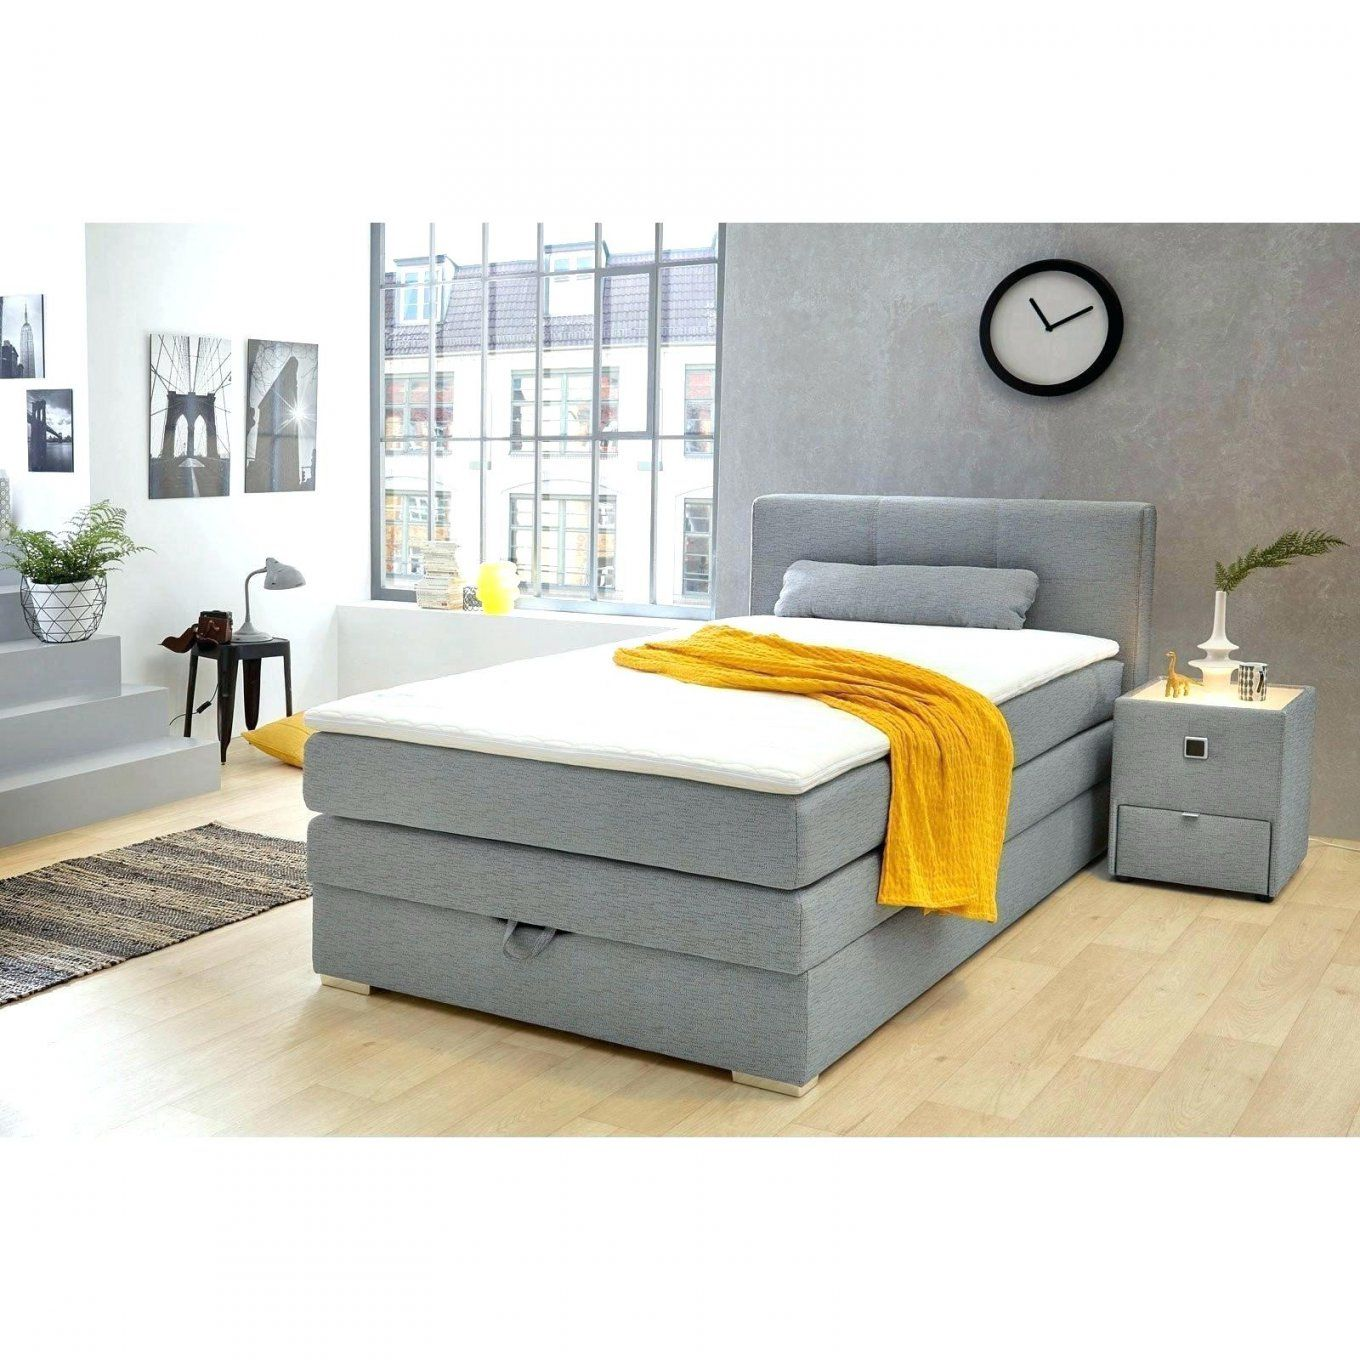 Boxspringbett Forum Top 1 William Bugatti Ikea Boxspringbetten von Boxspringbett Esposa Test Photo